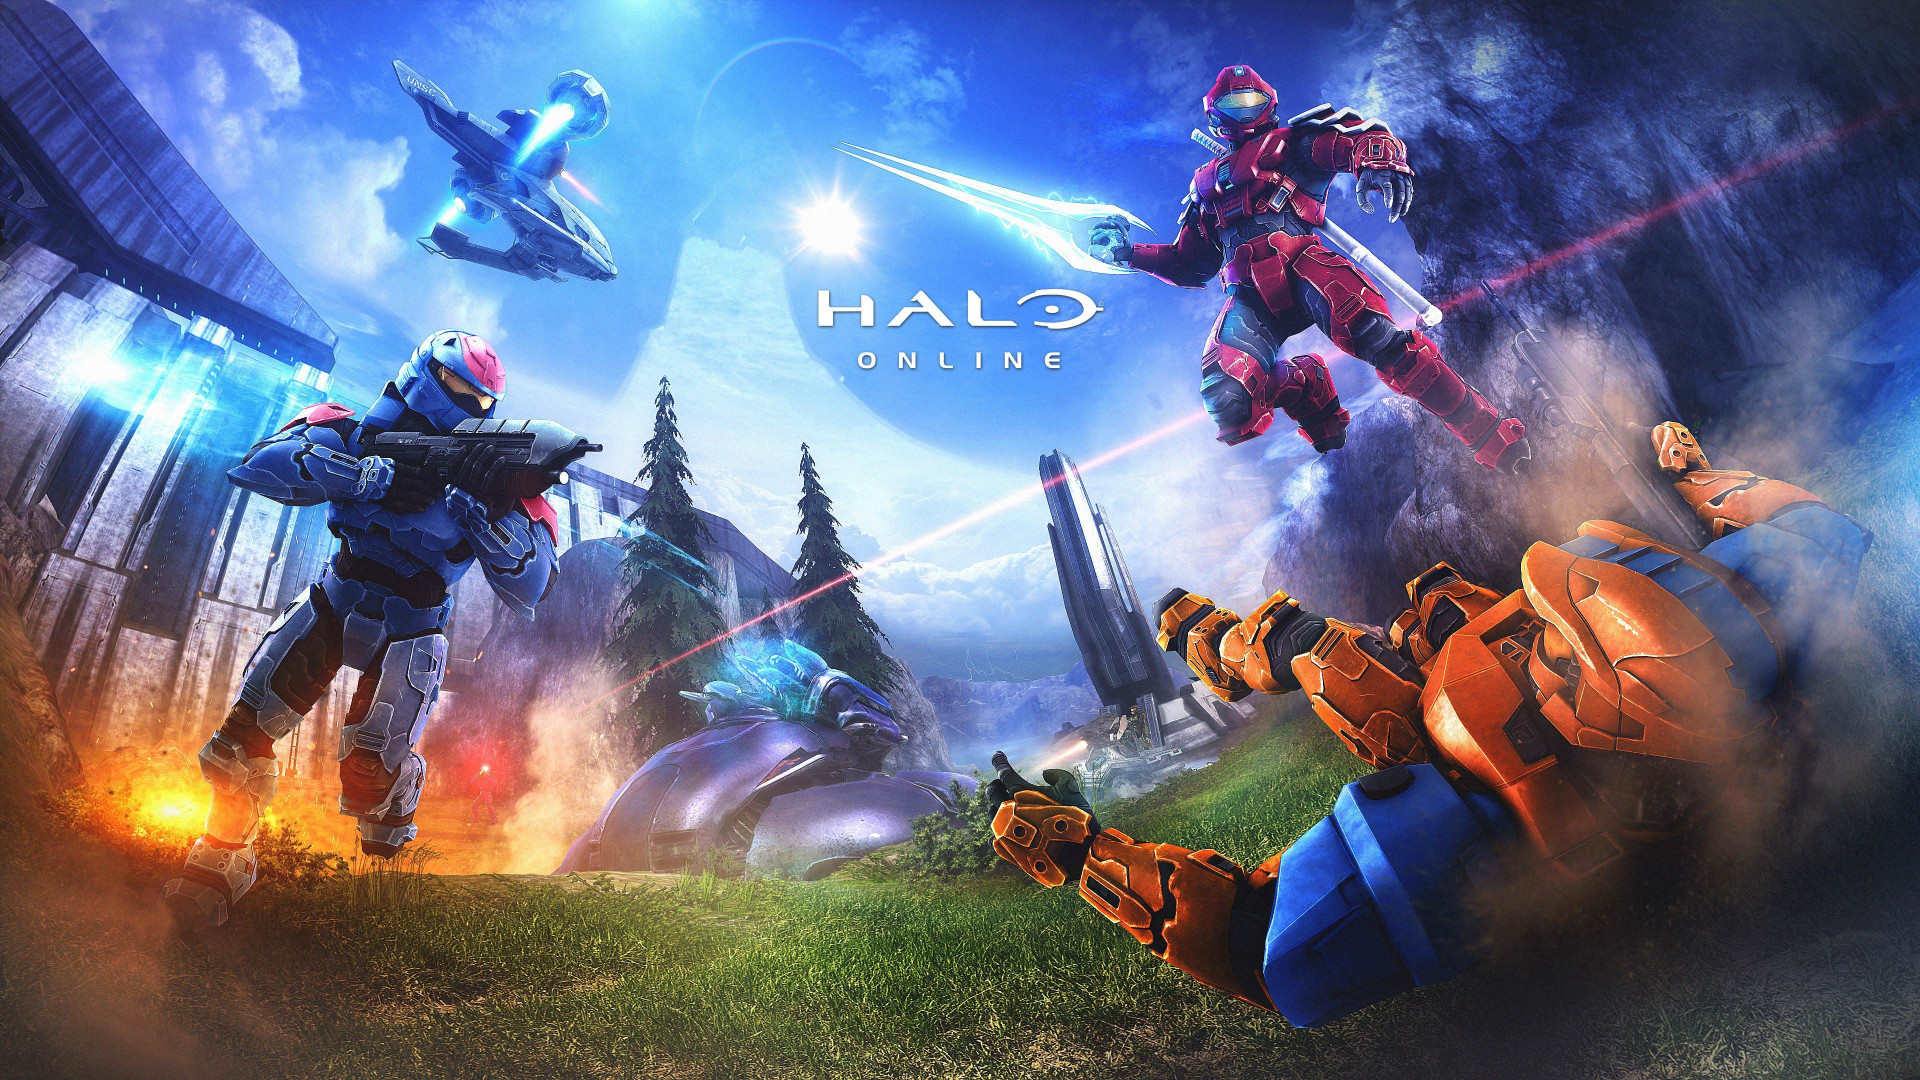 Download Wallpaper Halo Online 1920x1080